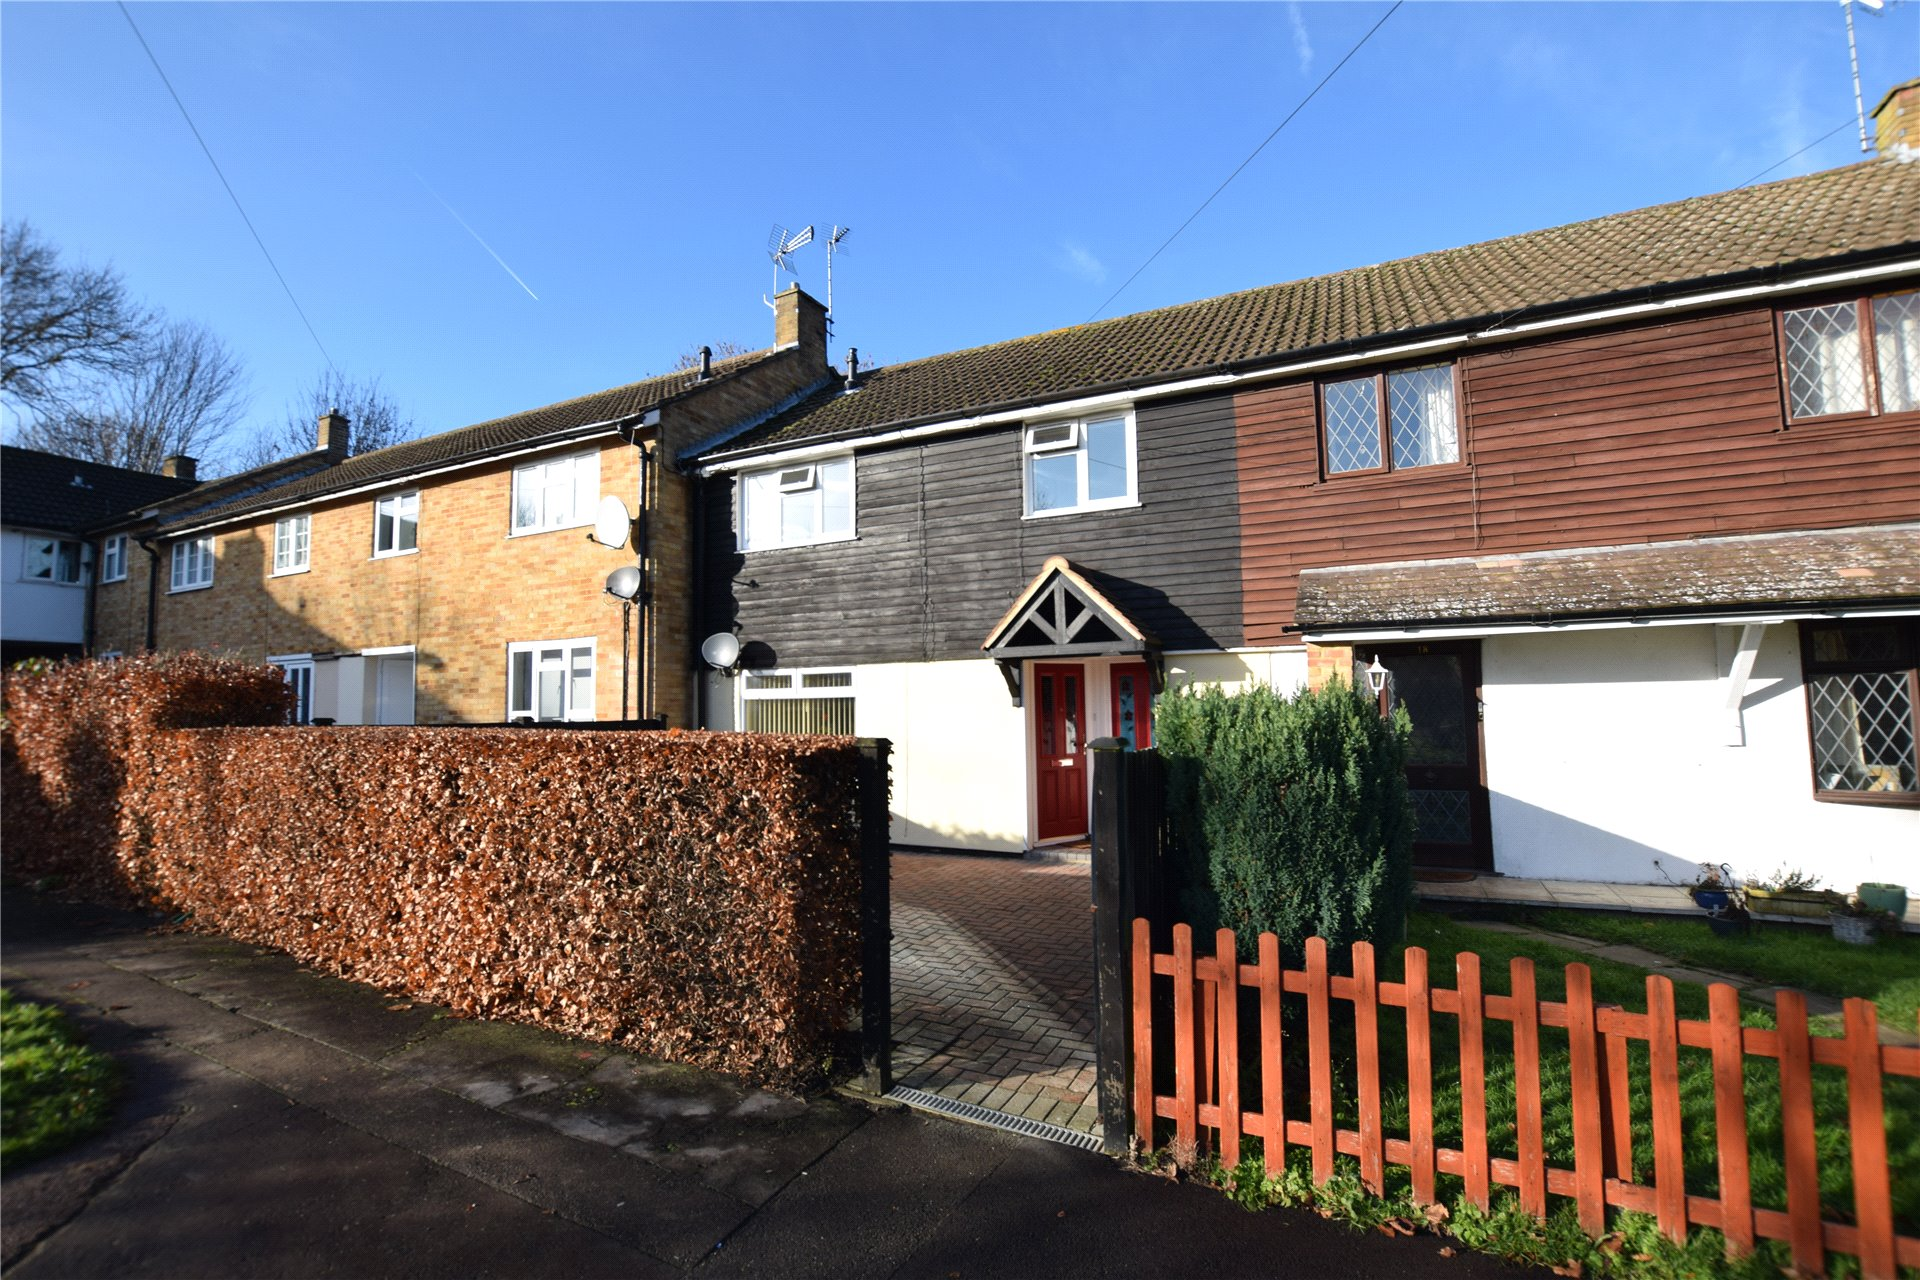 3 Bedrooms Terraced House for sale in North Green, Bracknell, Berkshire, RG12